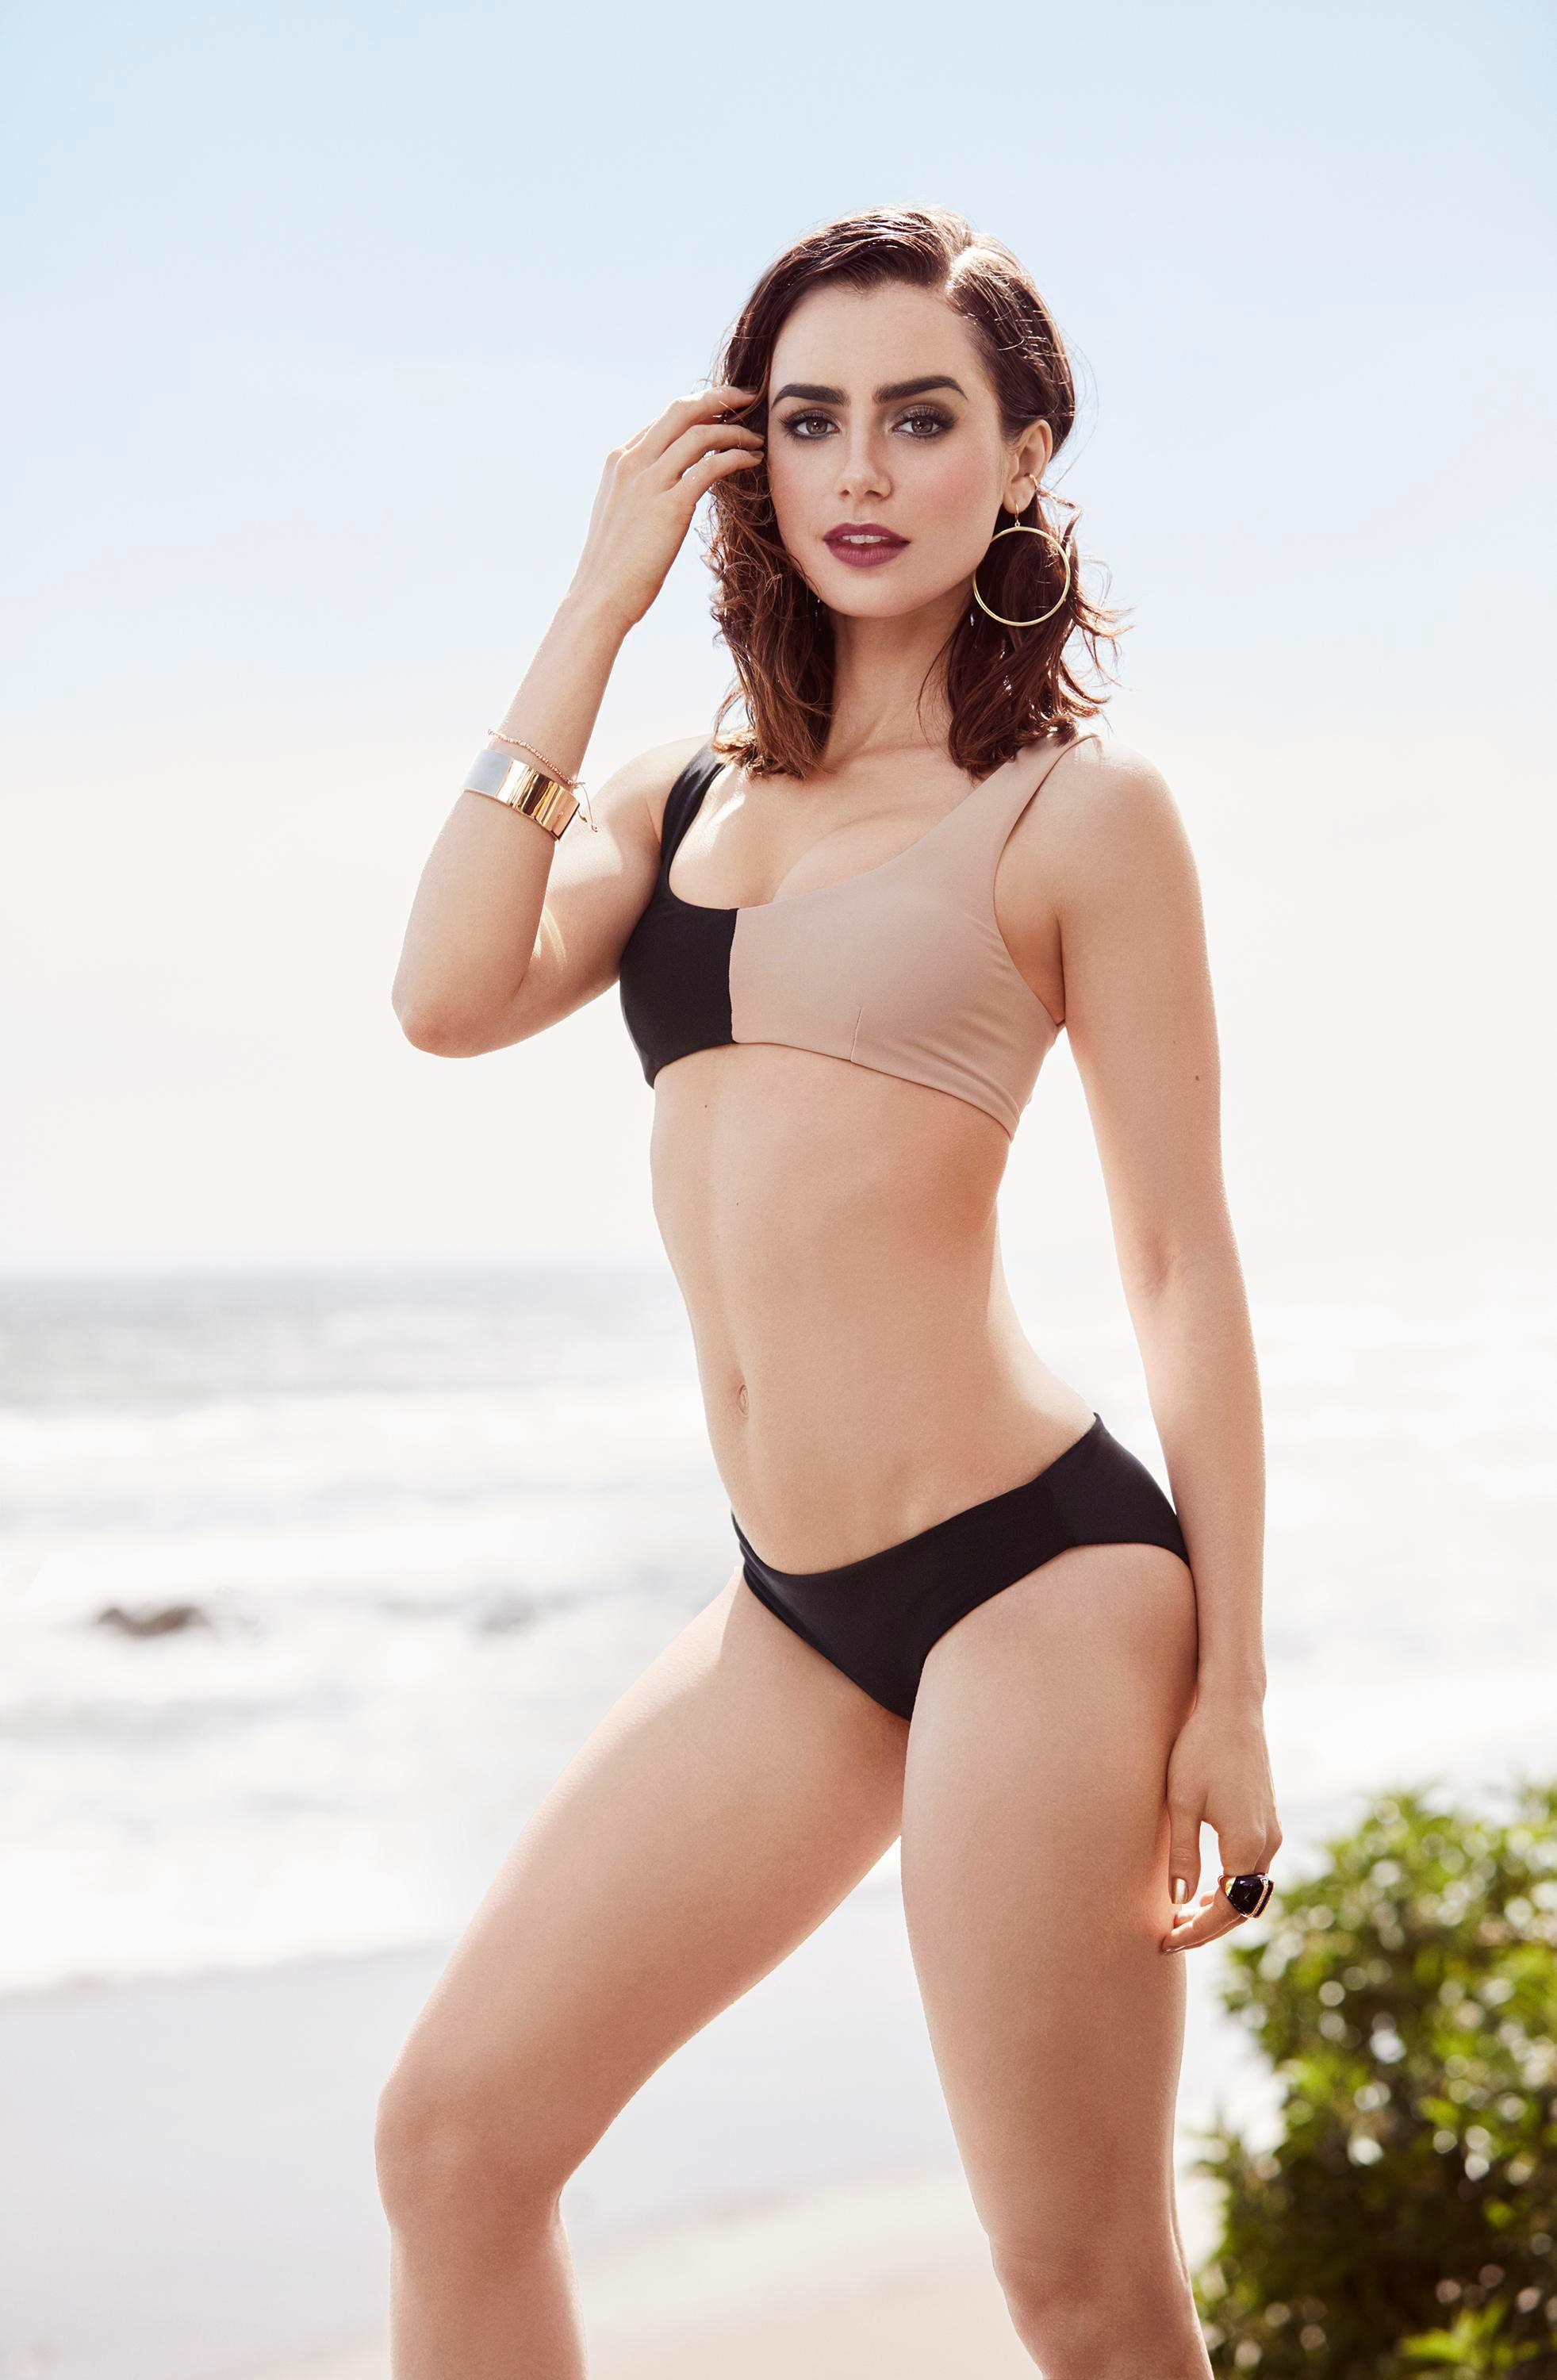 61 Hot Pictures Of Lily Collins Are Like A Slice Of Heaven ...